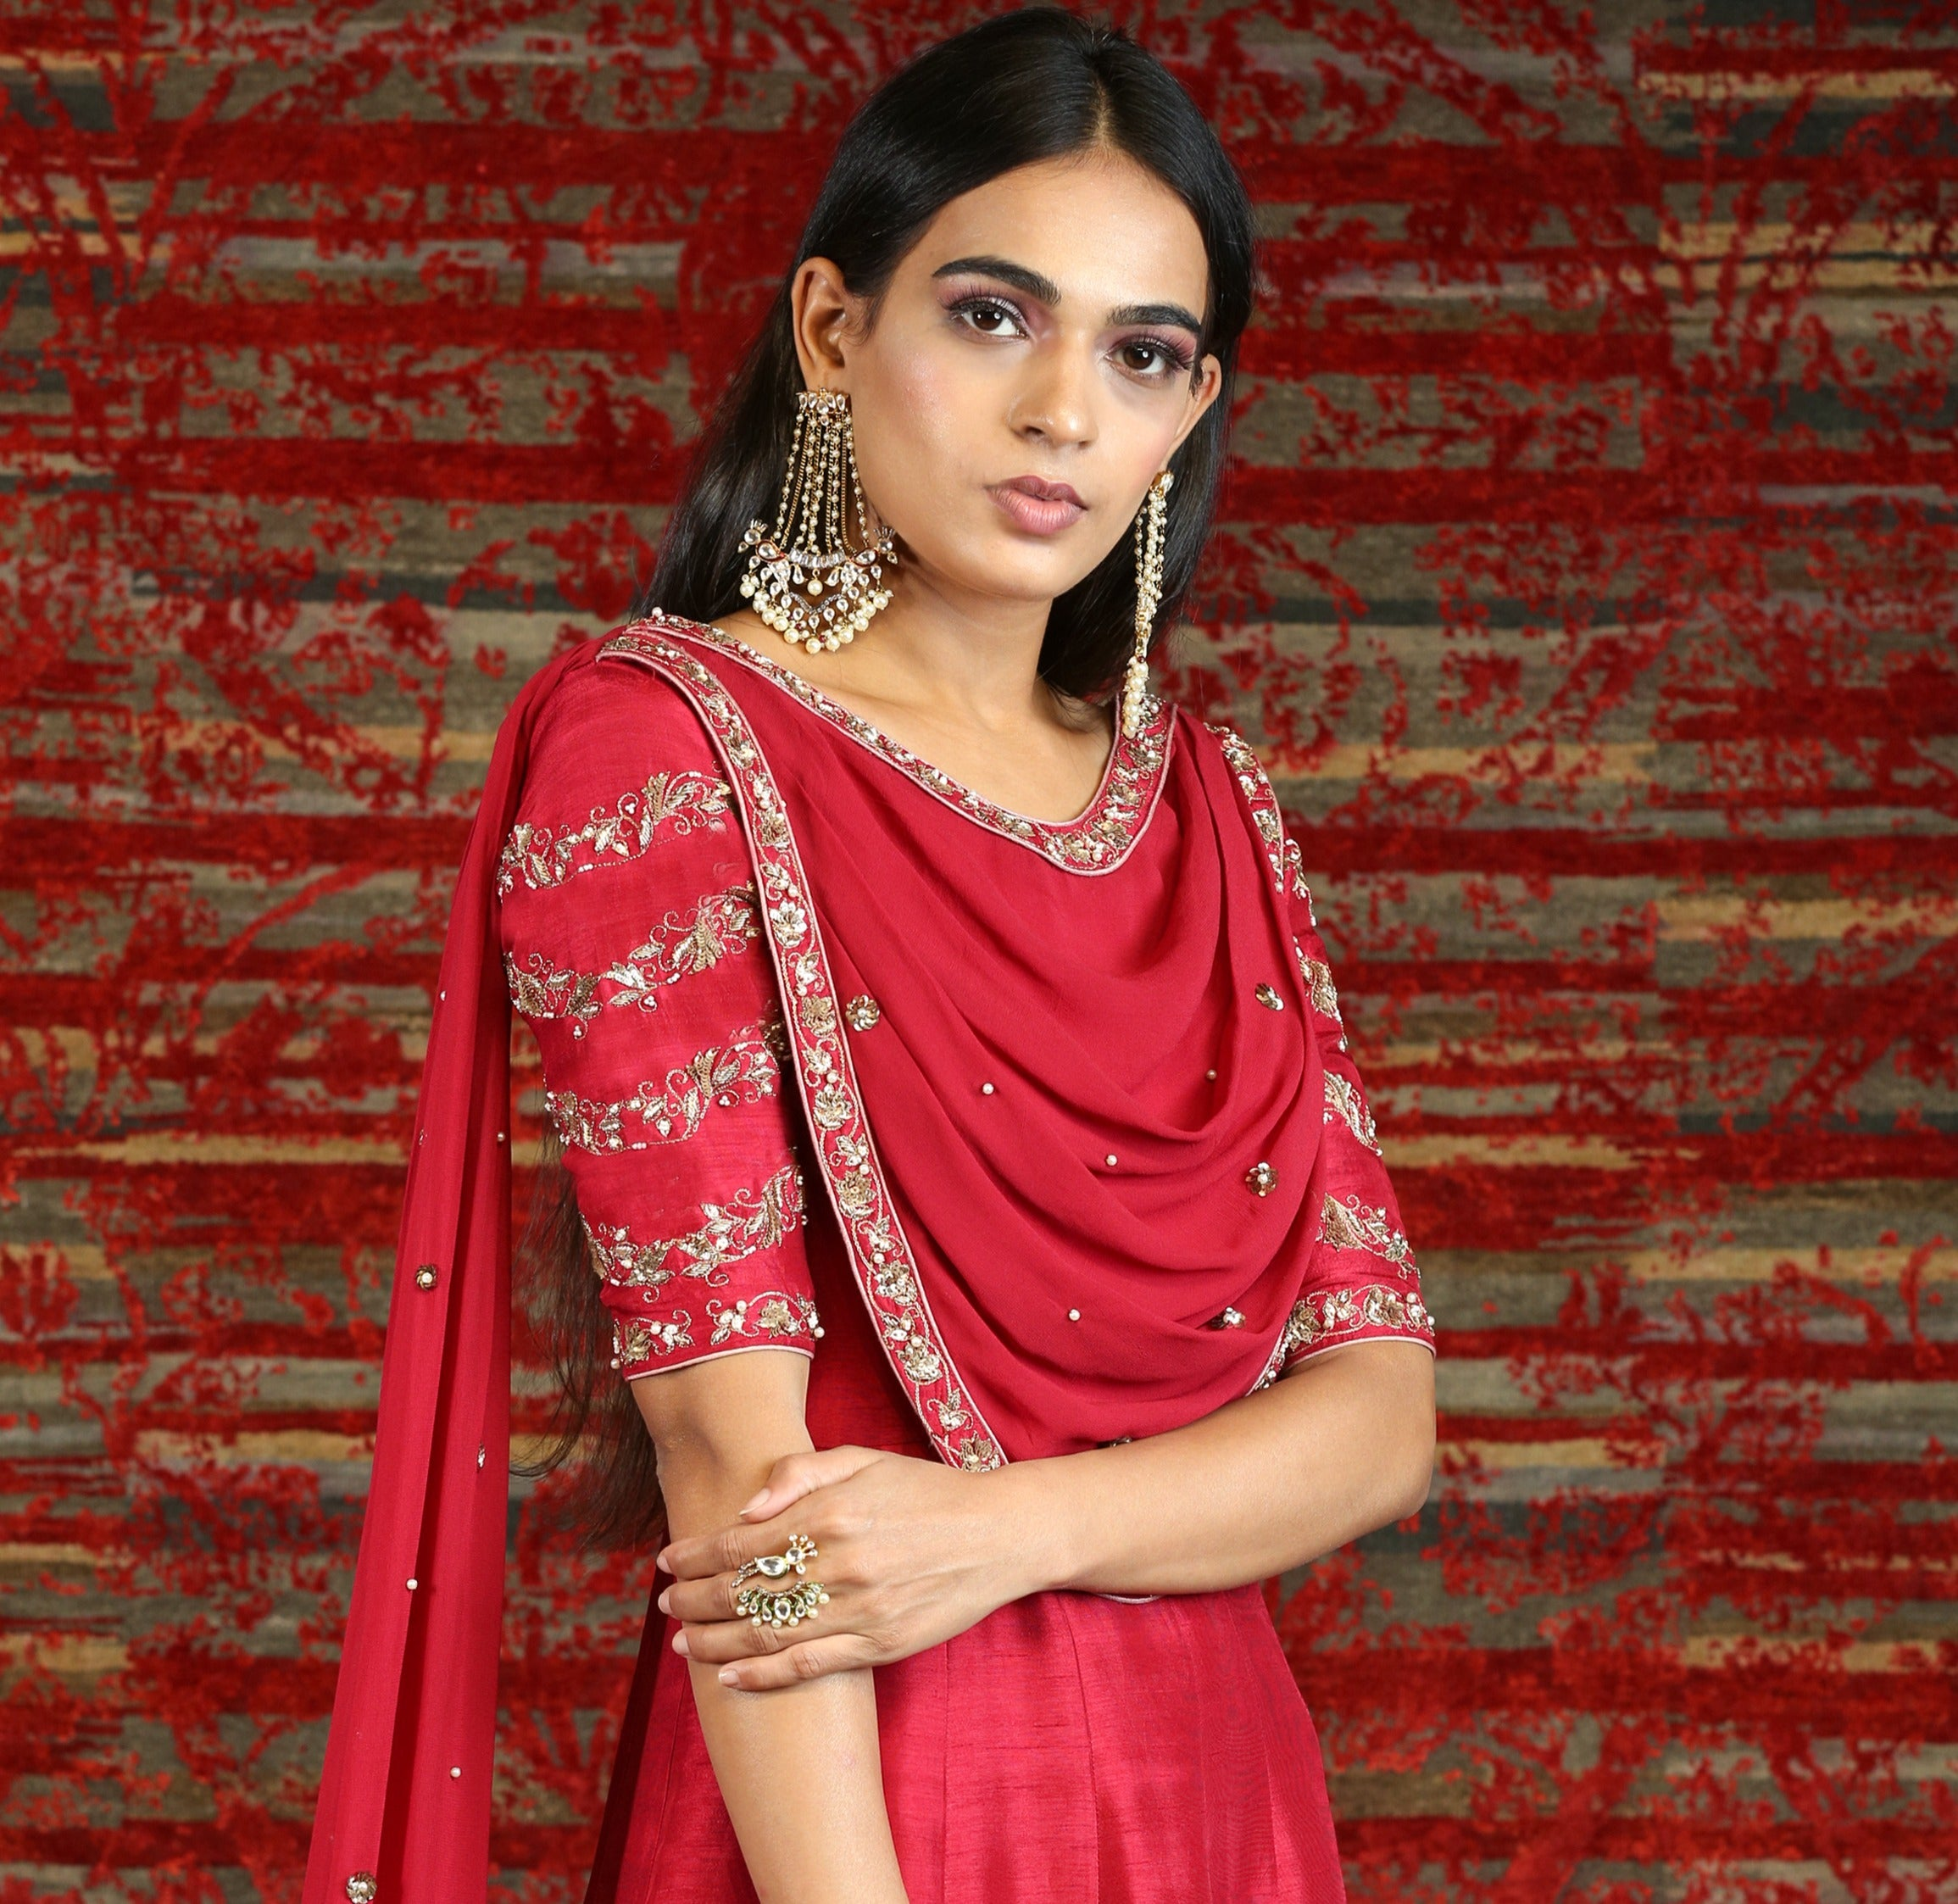 Anarakali with Attached Dupatta